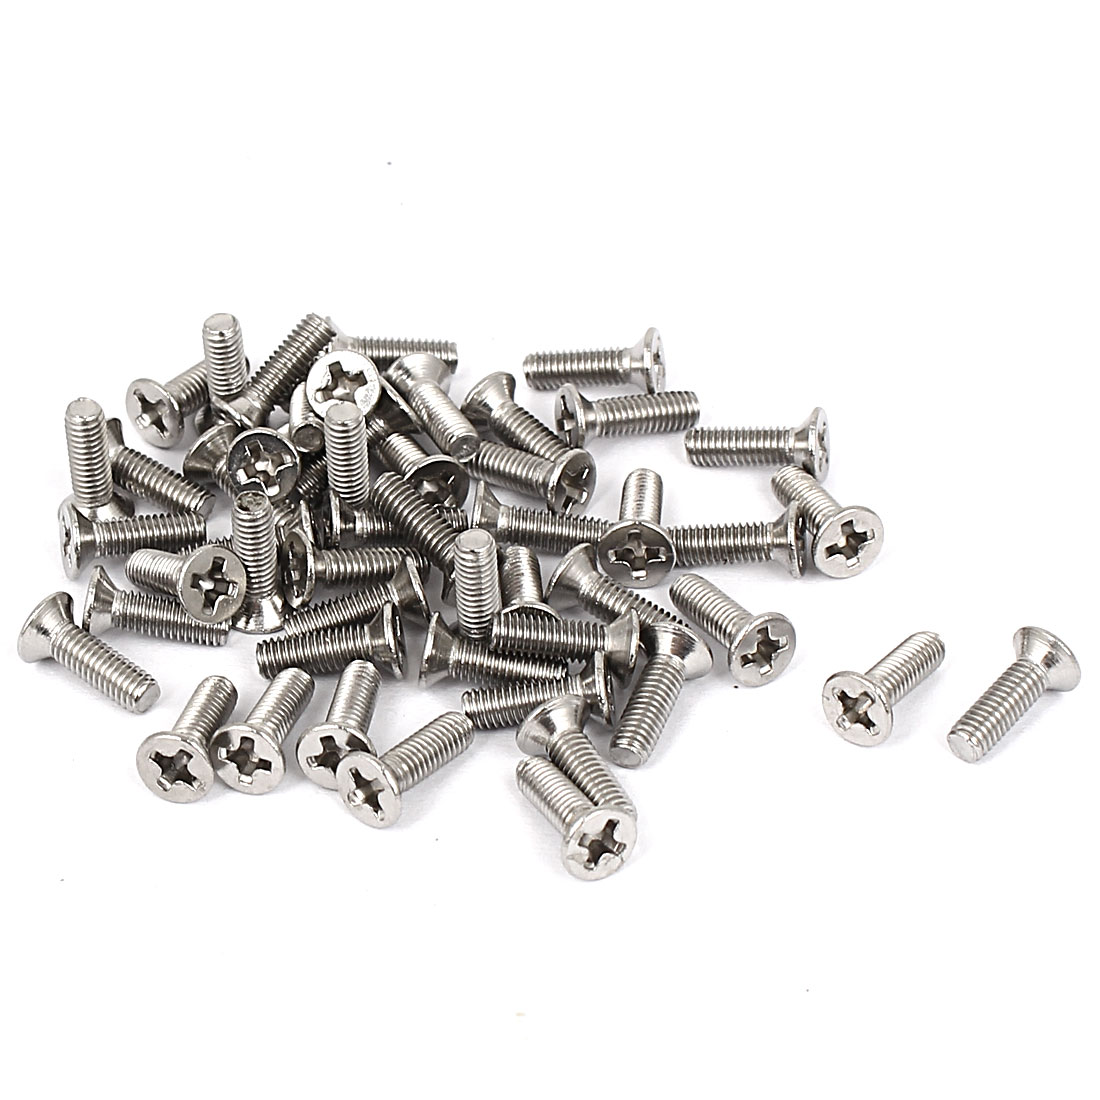 M3x10mm Stainless Steel Phillips Flat Countersunk Head Screws 50pcs